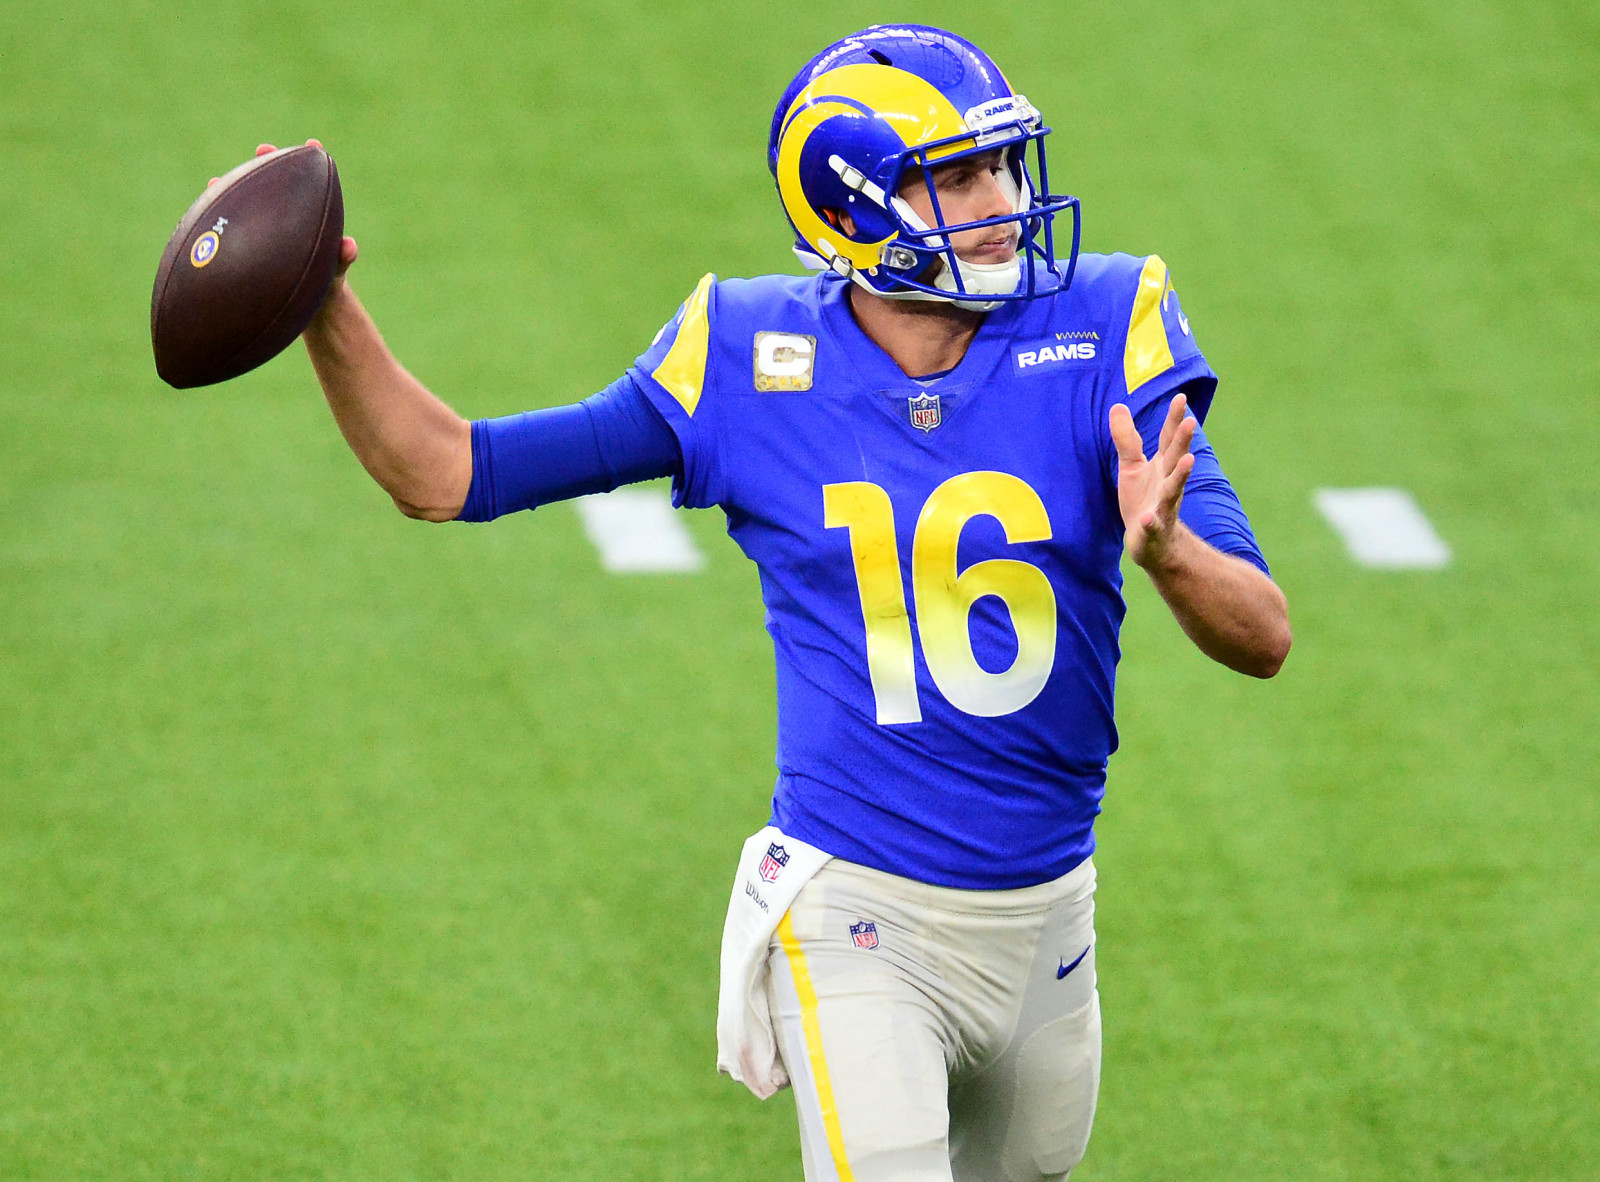 Suddenly La Rams Qb Jared Goff Cannot Find The Endzone